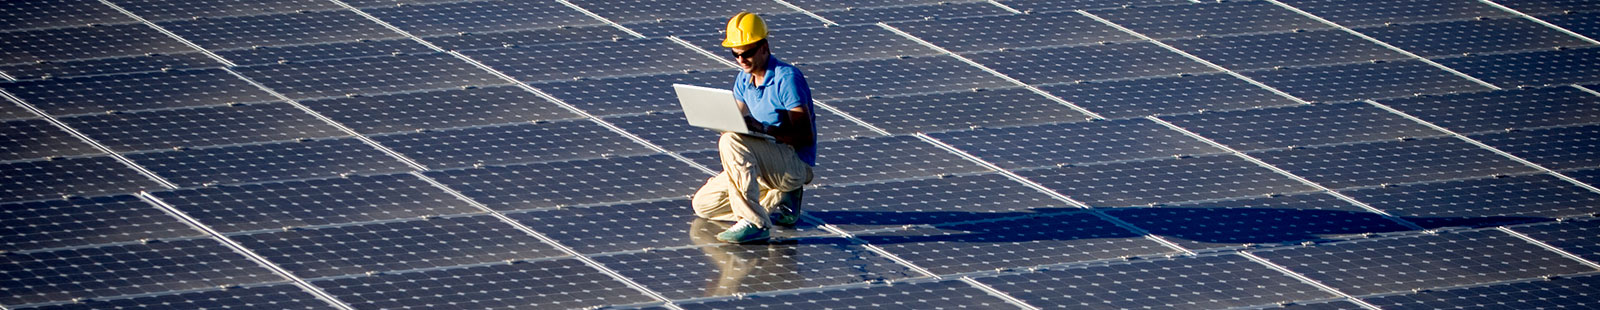 Employee with laptop checking on solar panels